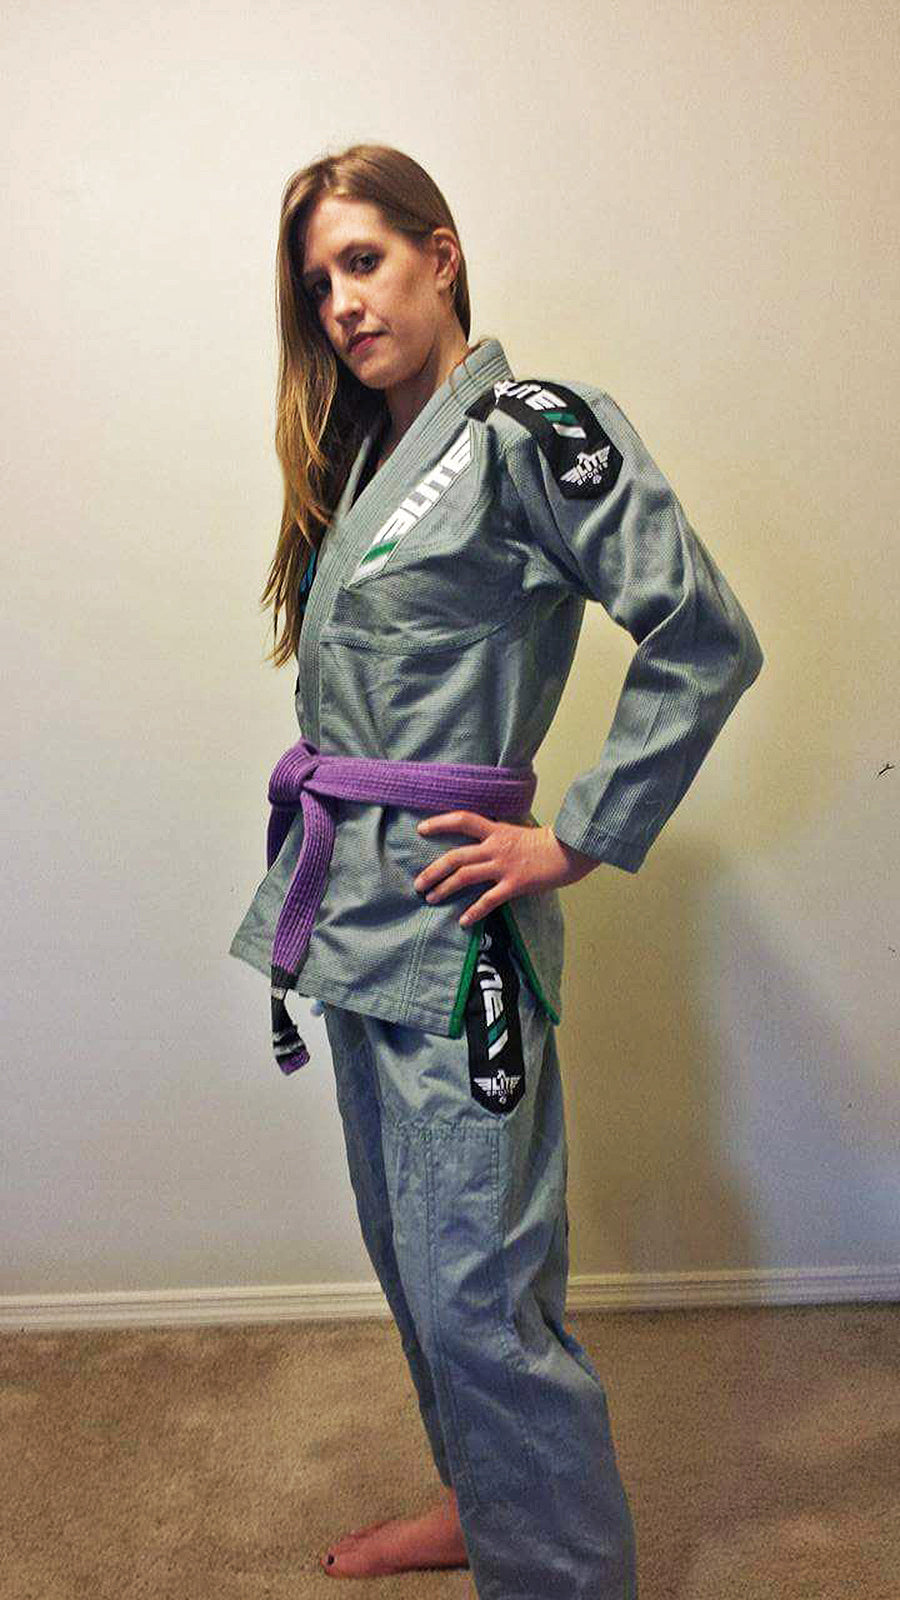 Elite Sports Team Elite Bjj Fighter Yves Nicole Christine Sullivan Image9